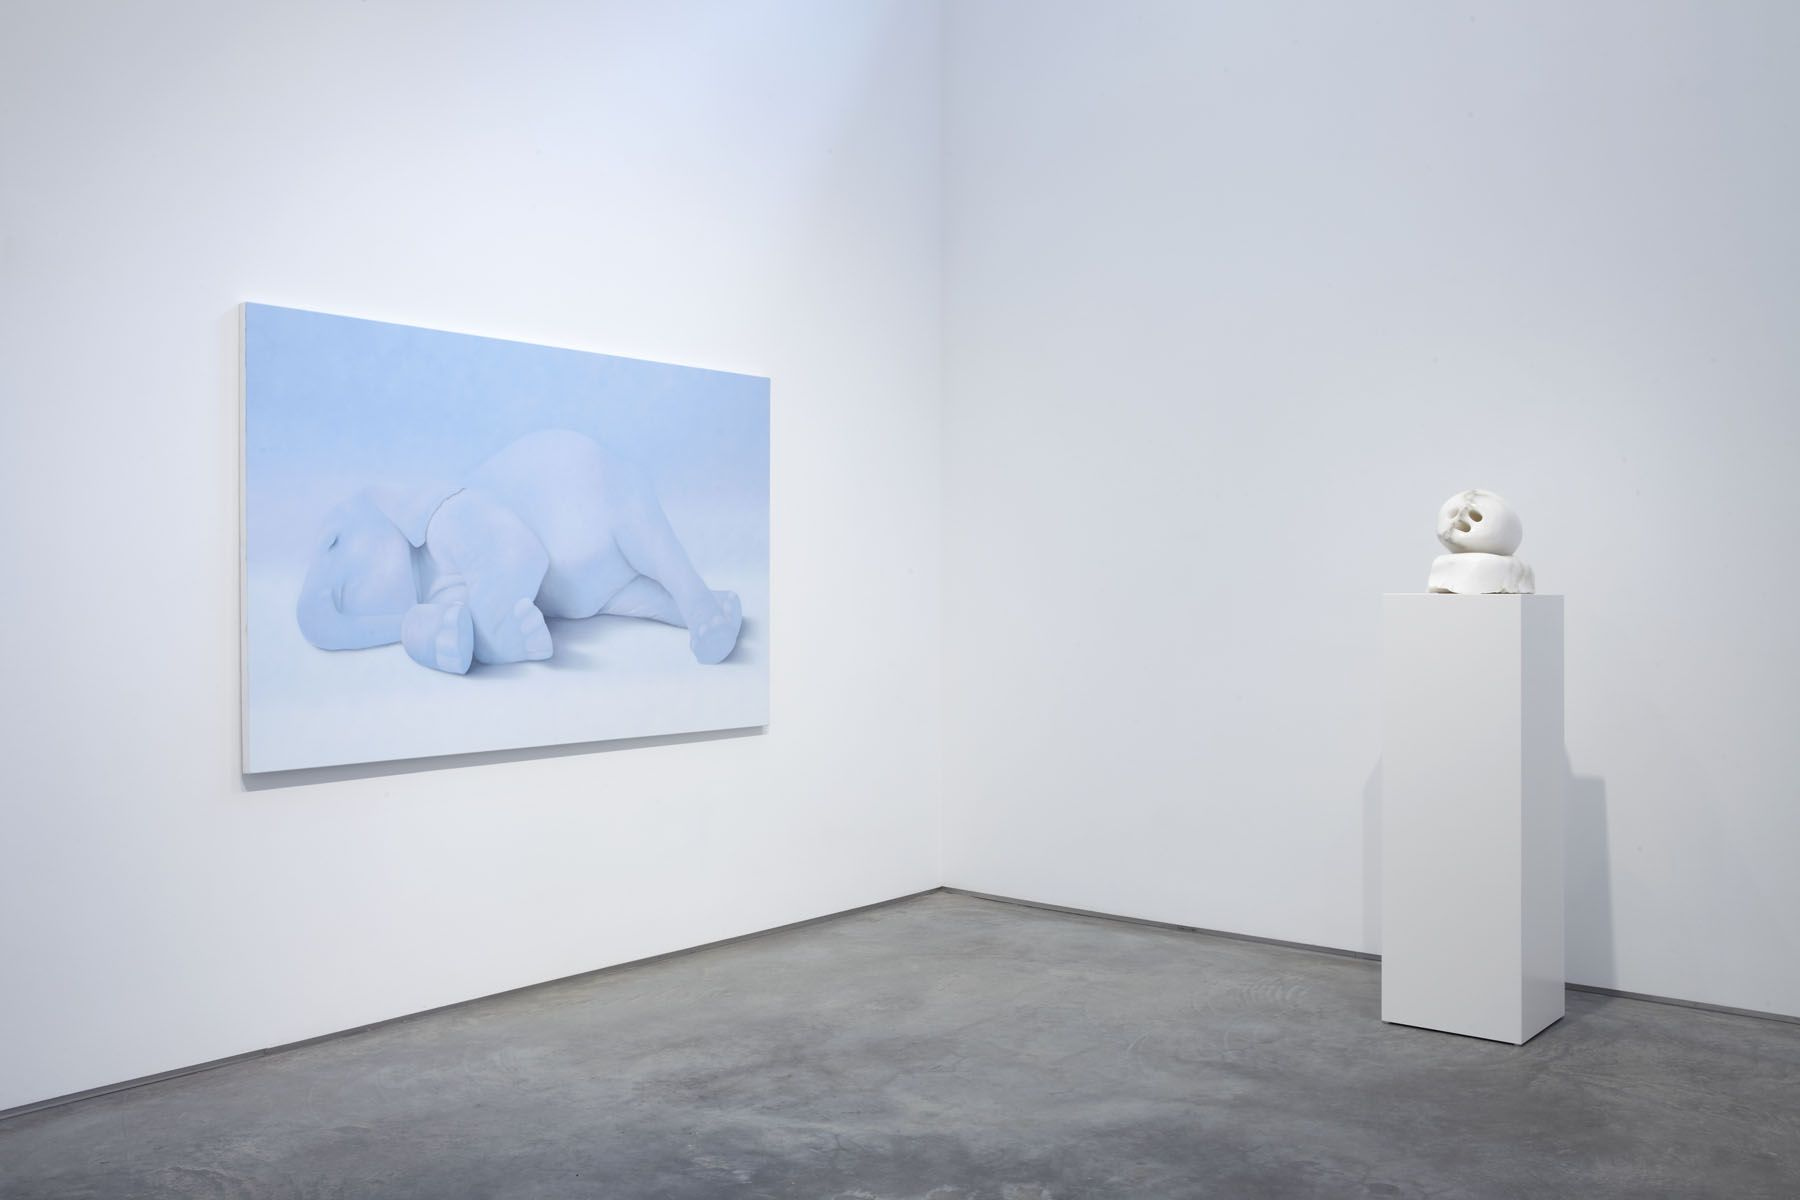 Memory is for the Living(Installation View), Marianne Boesky Gallery, 2010